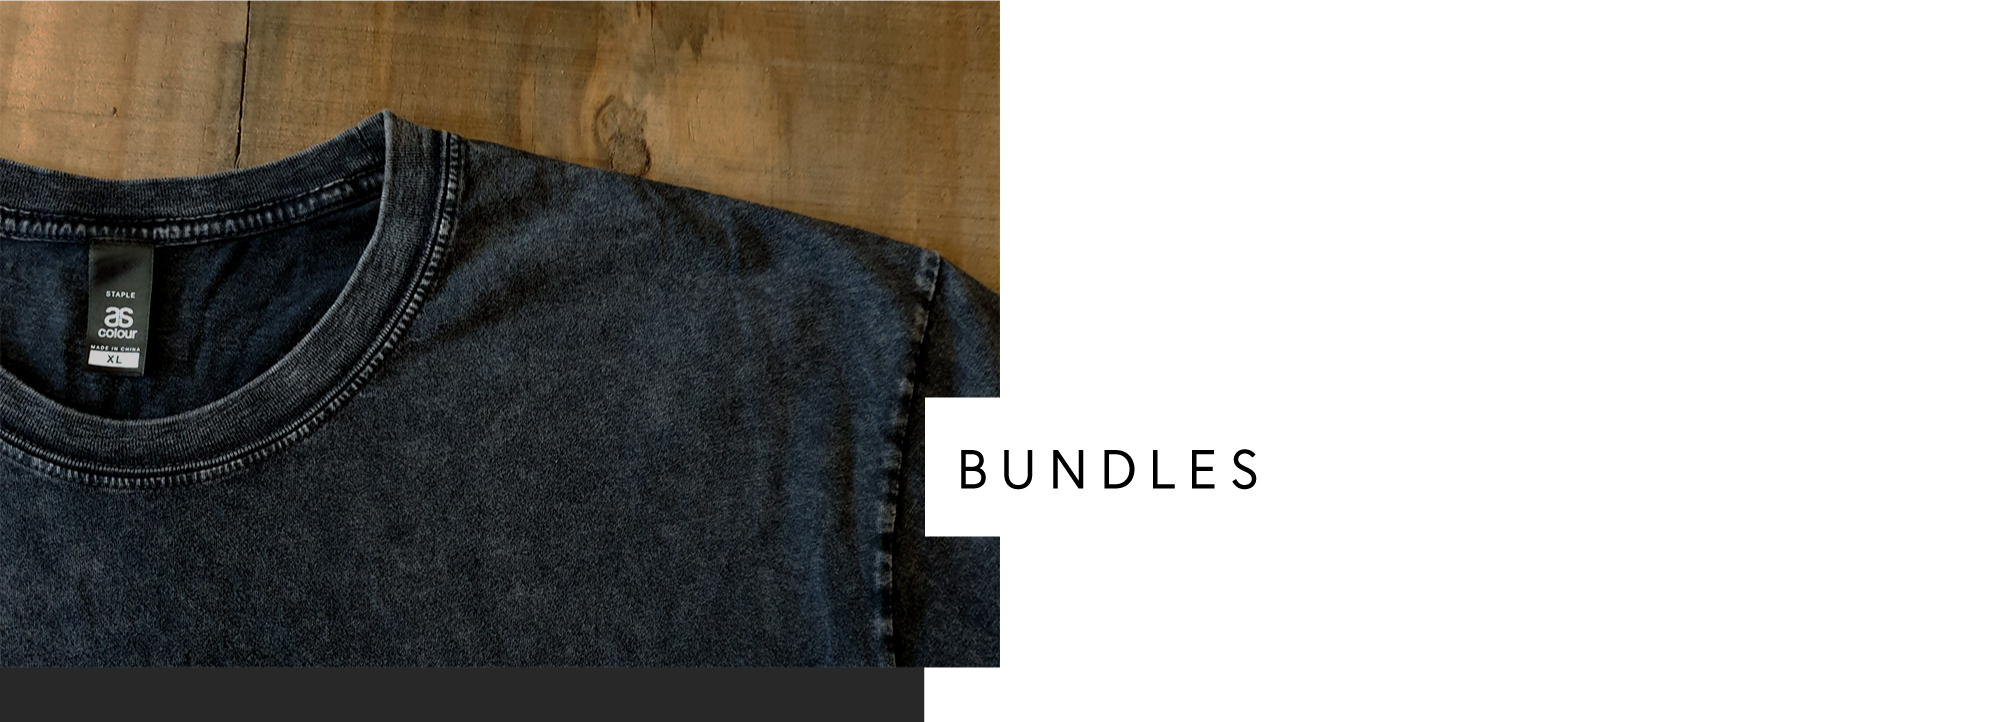 bundles-clickthrough-6.jpg